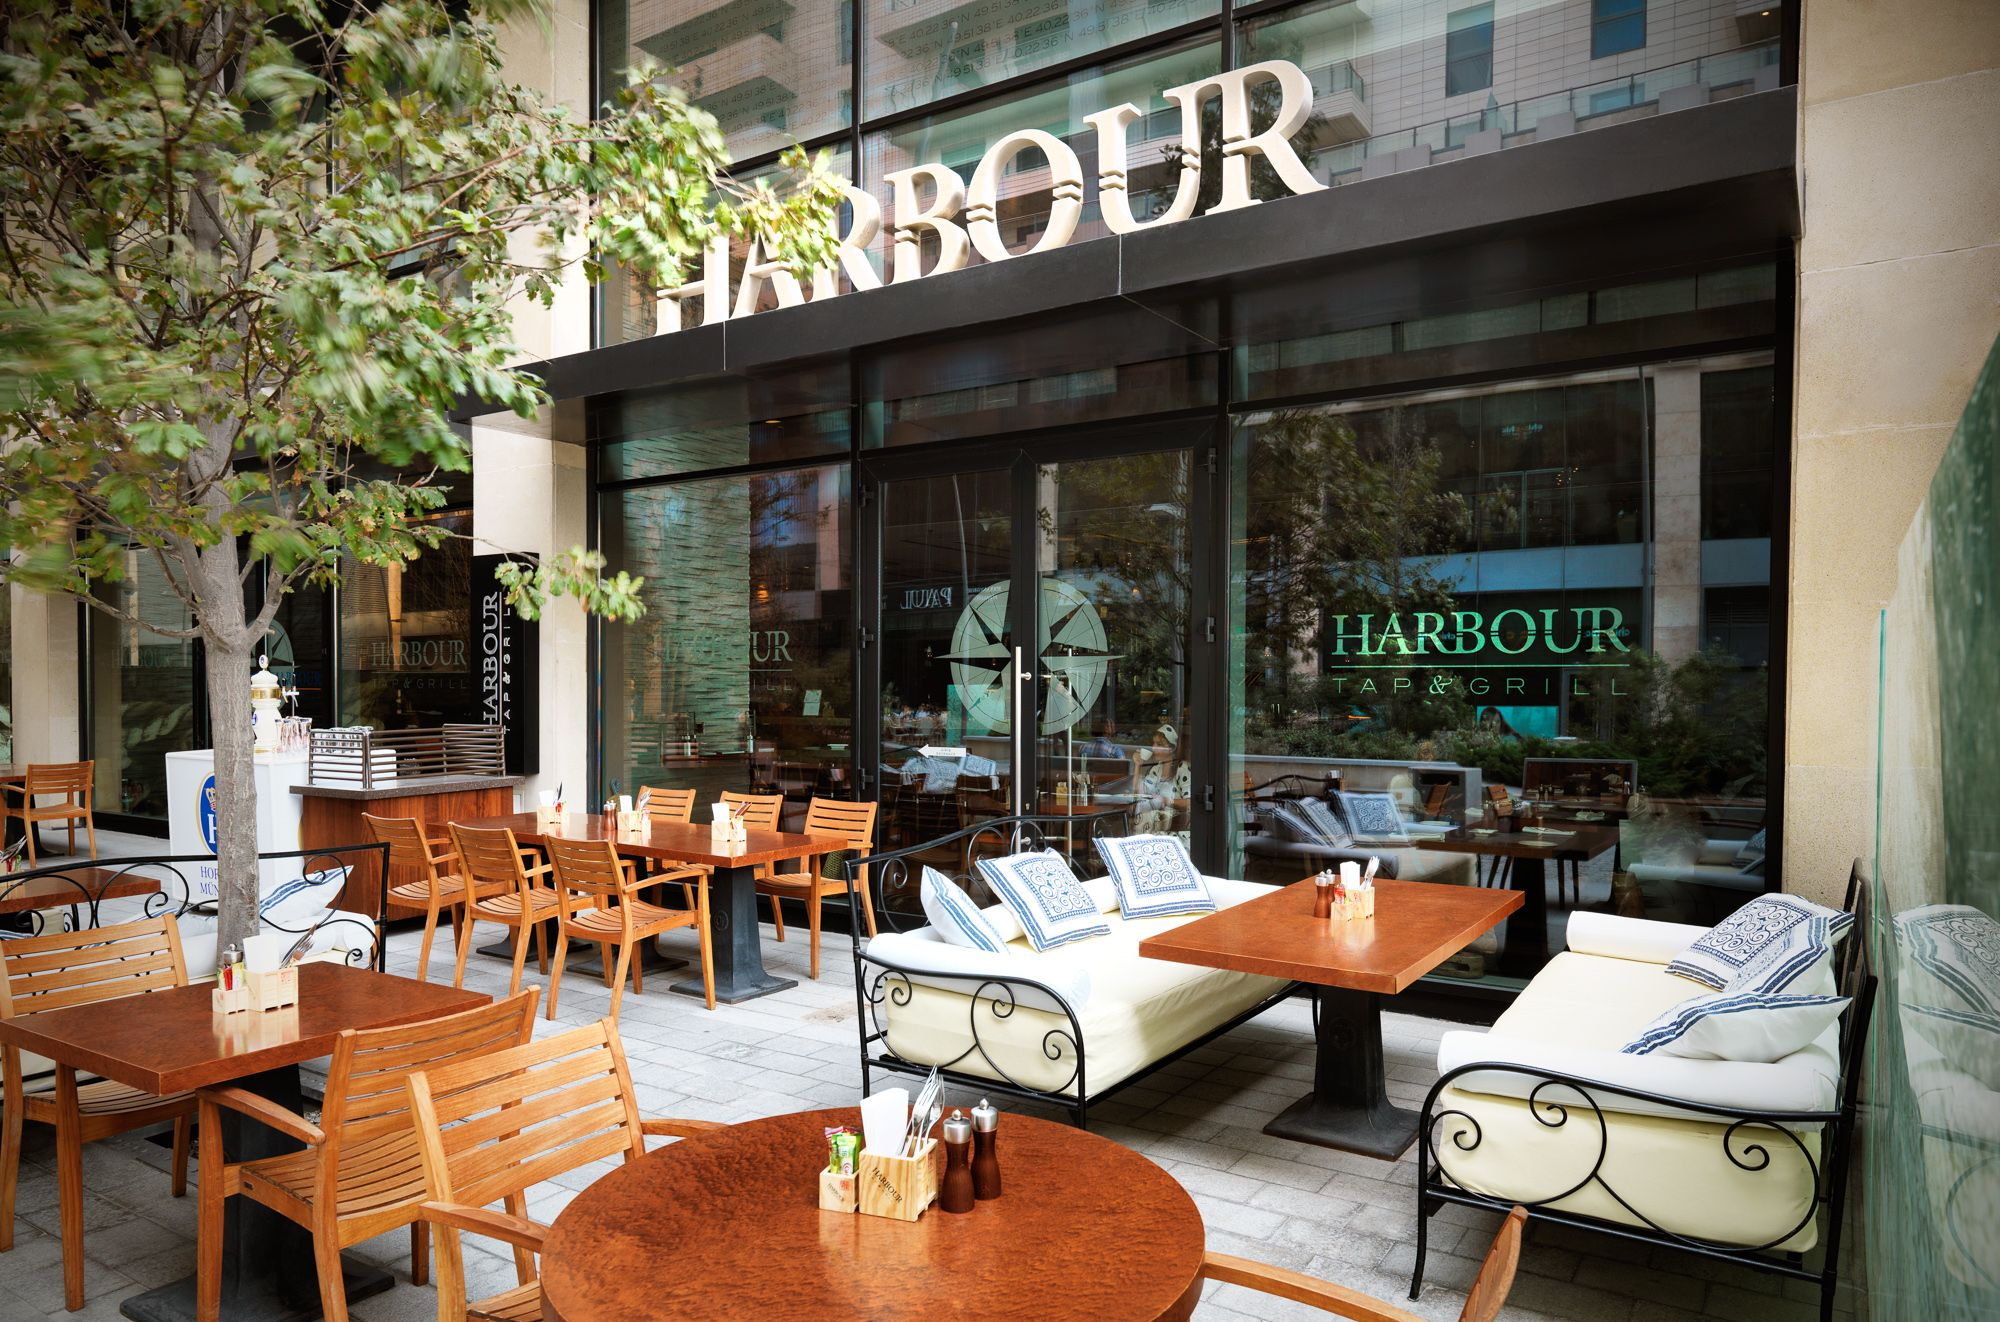 Port Baku A Spot Amongst Expats With Lots Of Bars And Restaurants Outdoor Furniture Sets Furniture Sets Home Decor